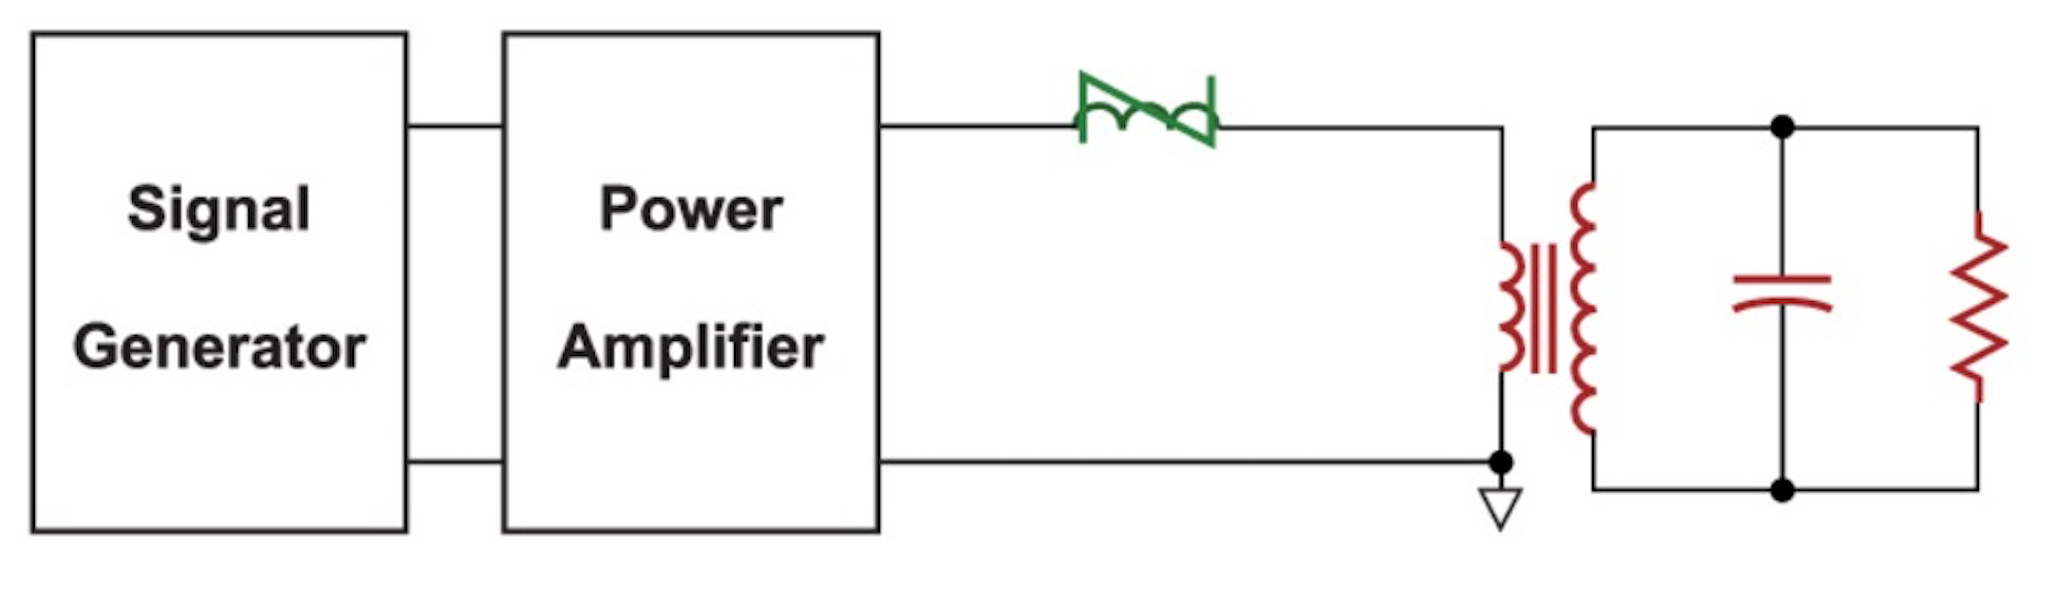 Ridley Engineering Design Center Wave Concepts Limited Electronic Circuit Simulation Software Both Hardware Testing And Are Essential To Understanding Power Supply Designs